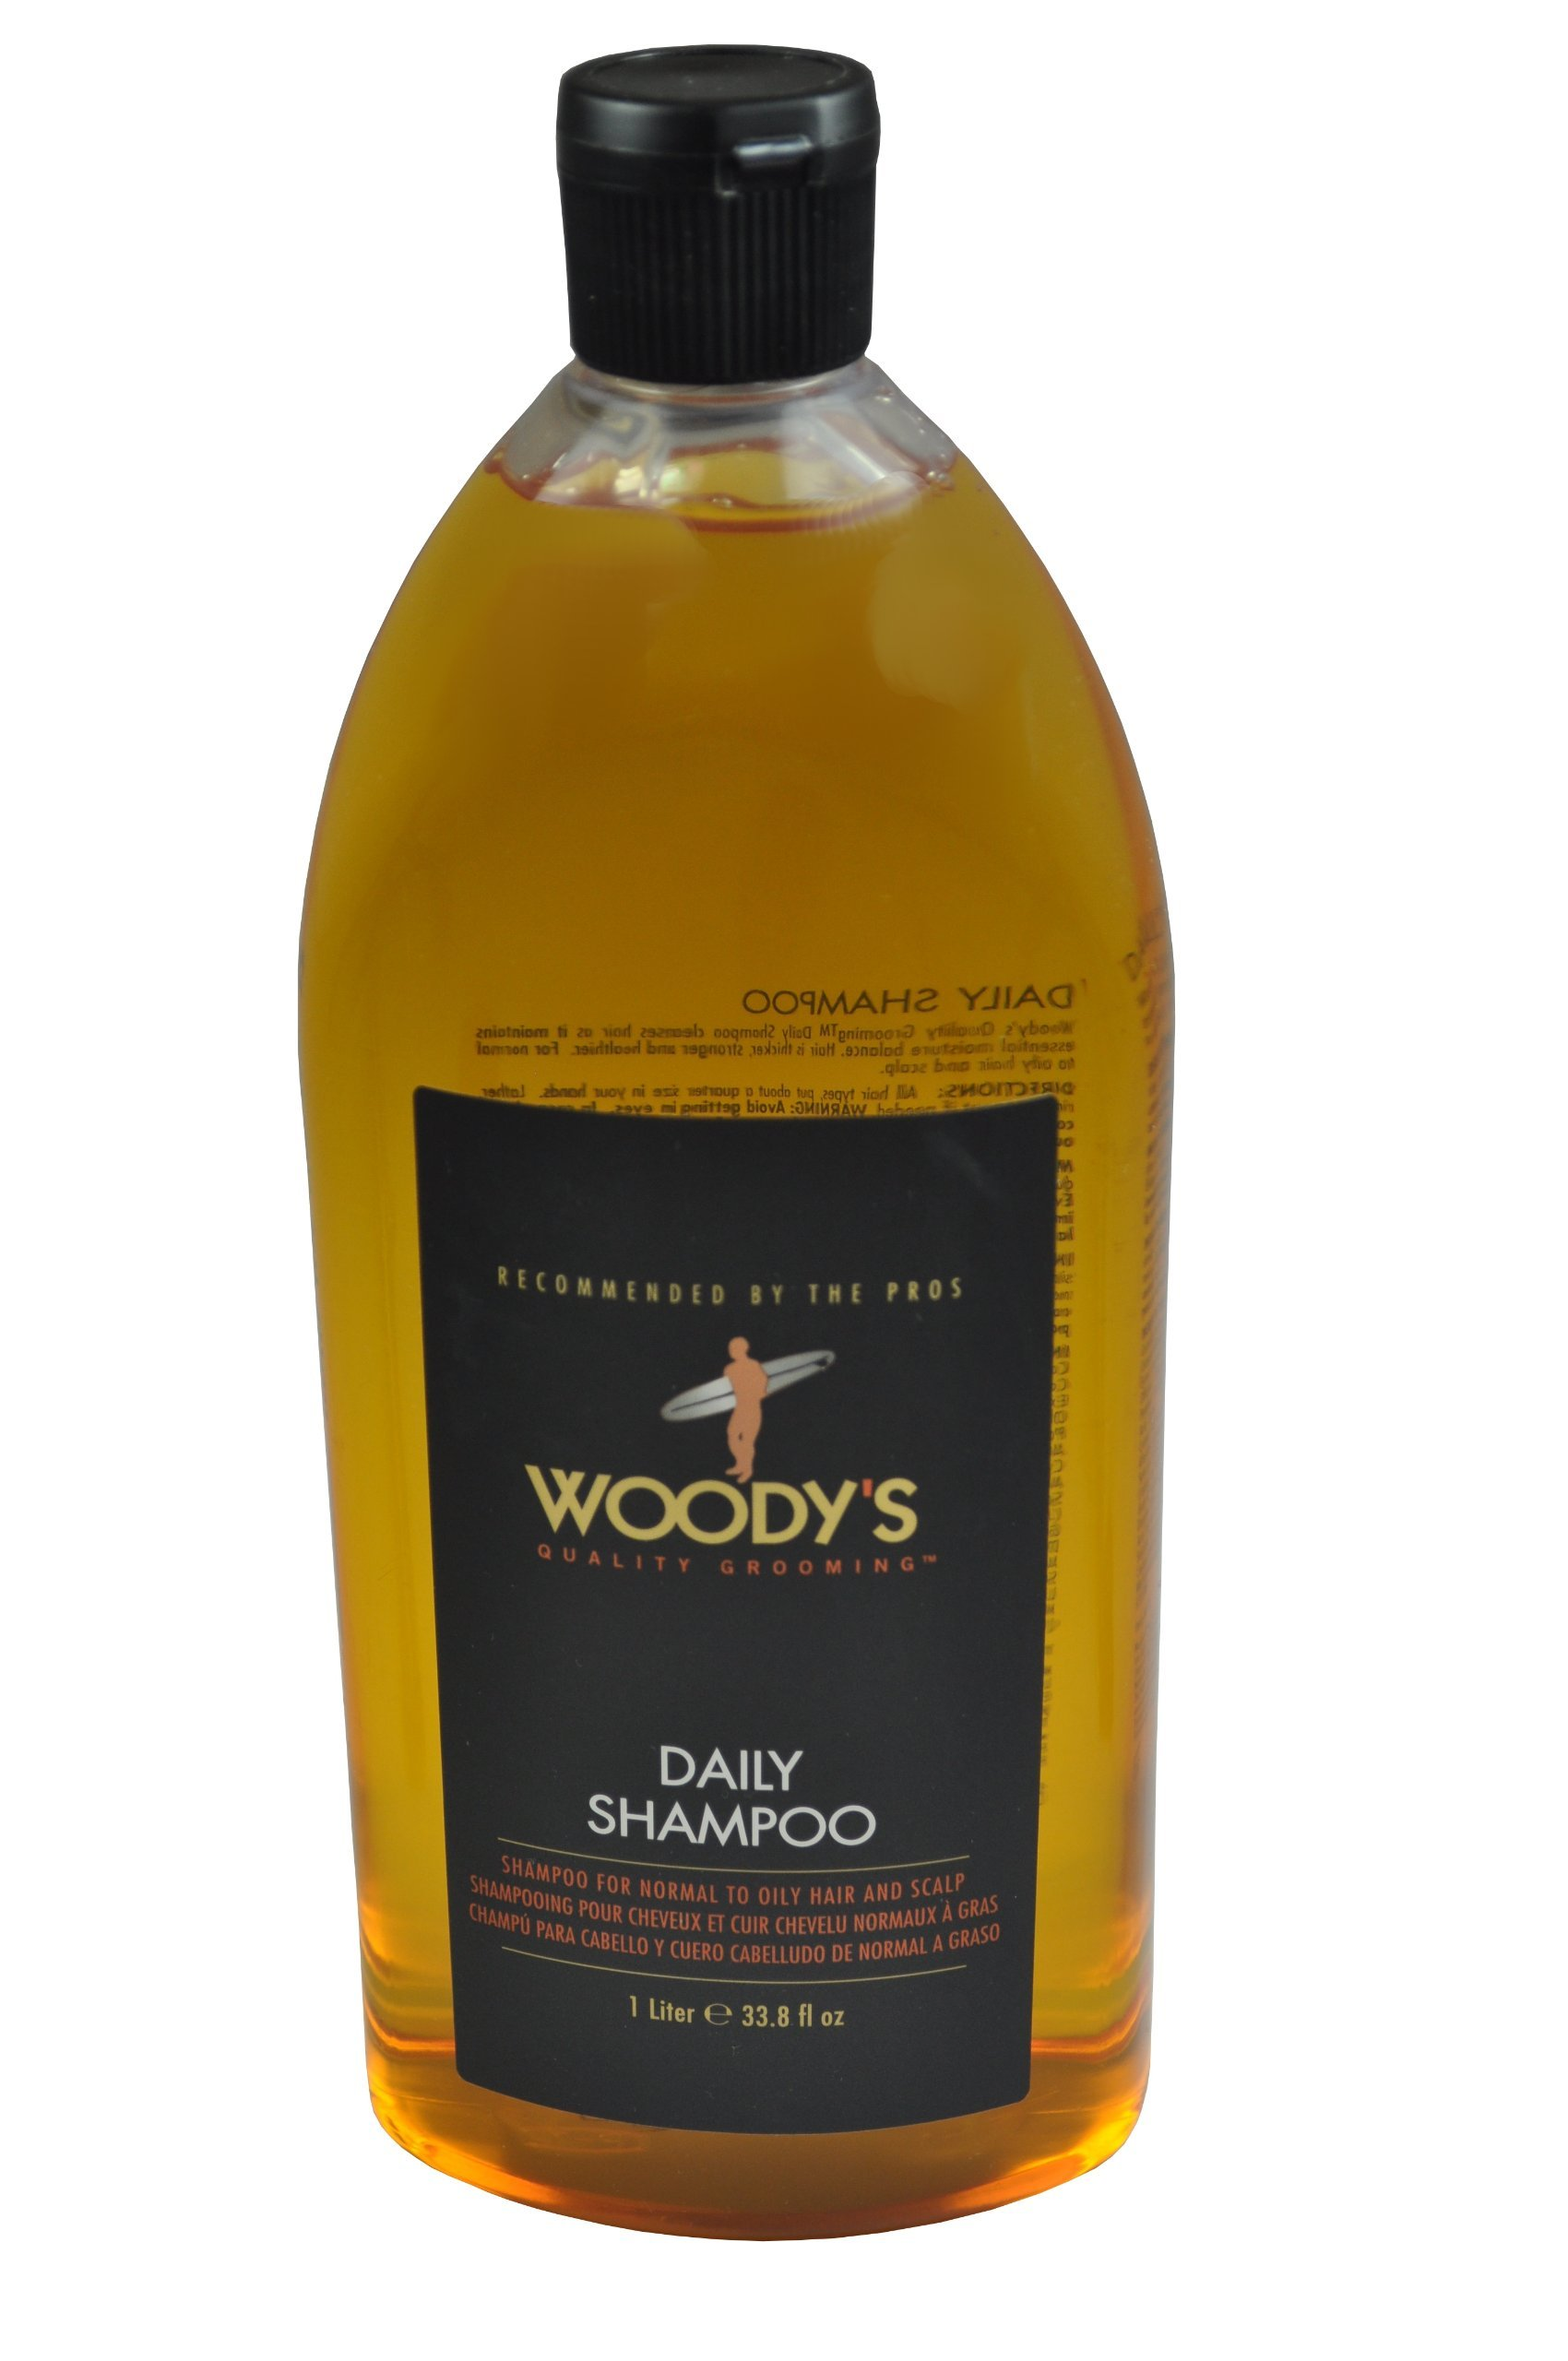 Woody's Daily Shampoo for Men, 33.8 Ounce